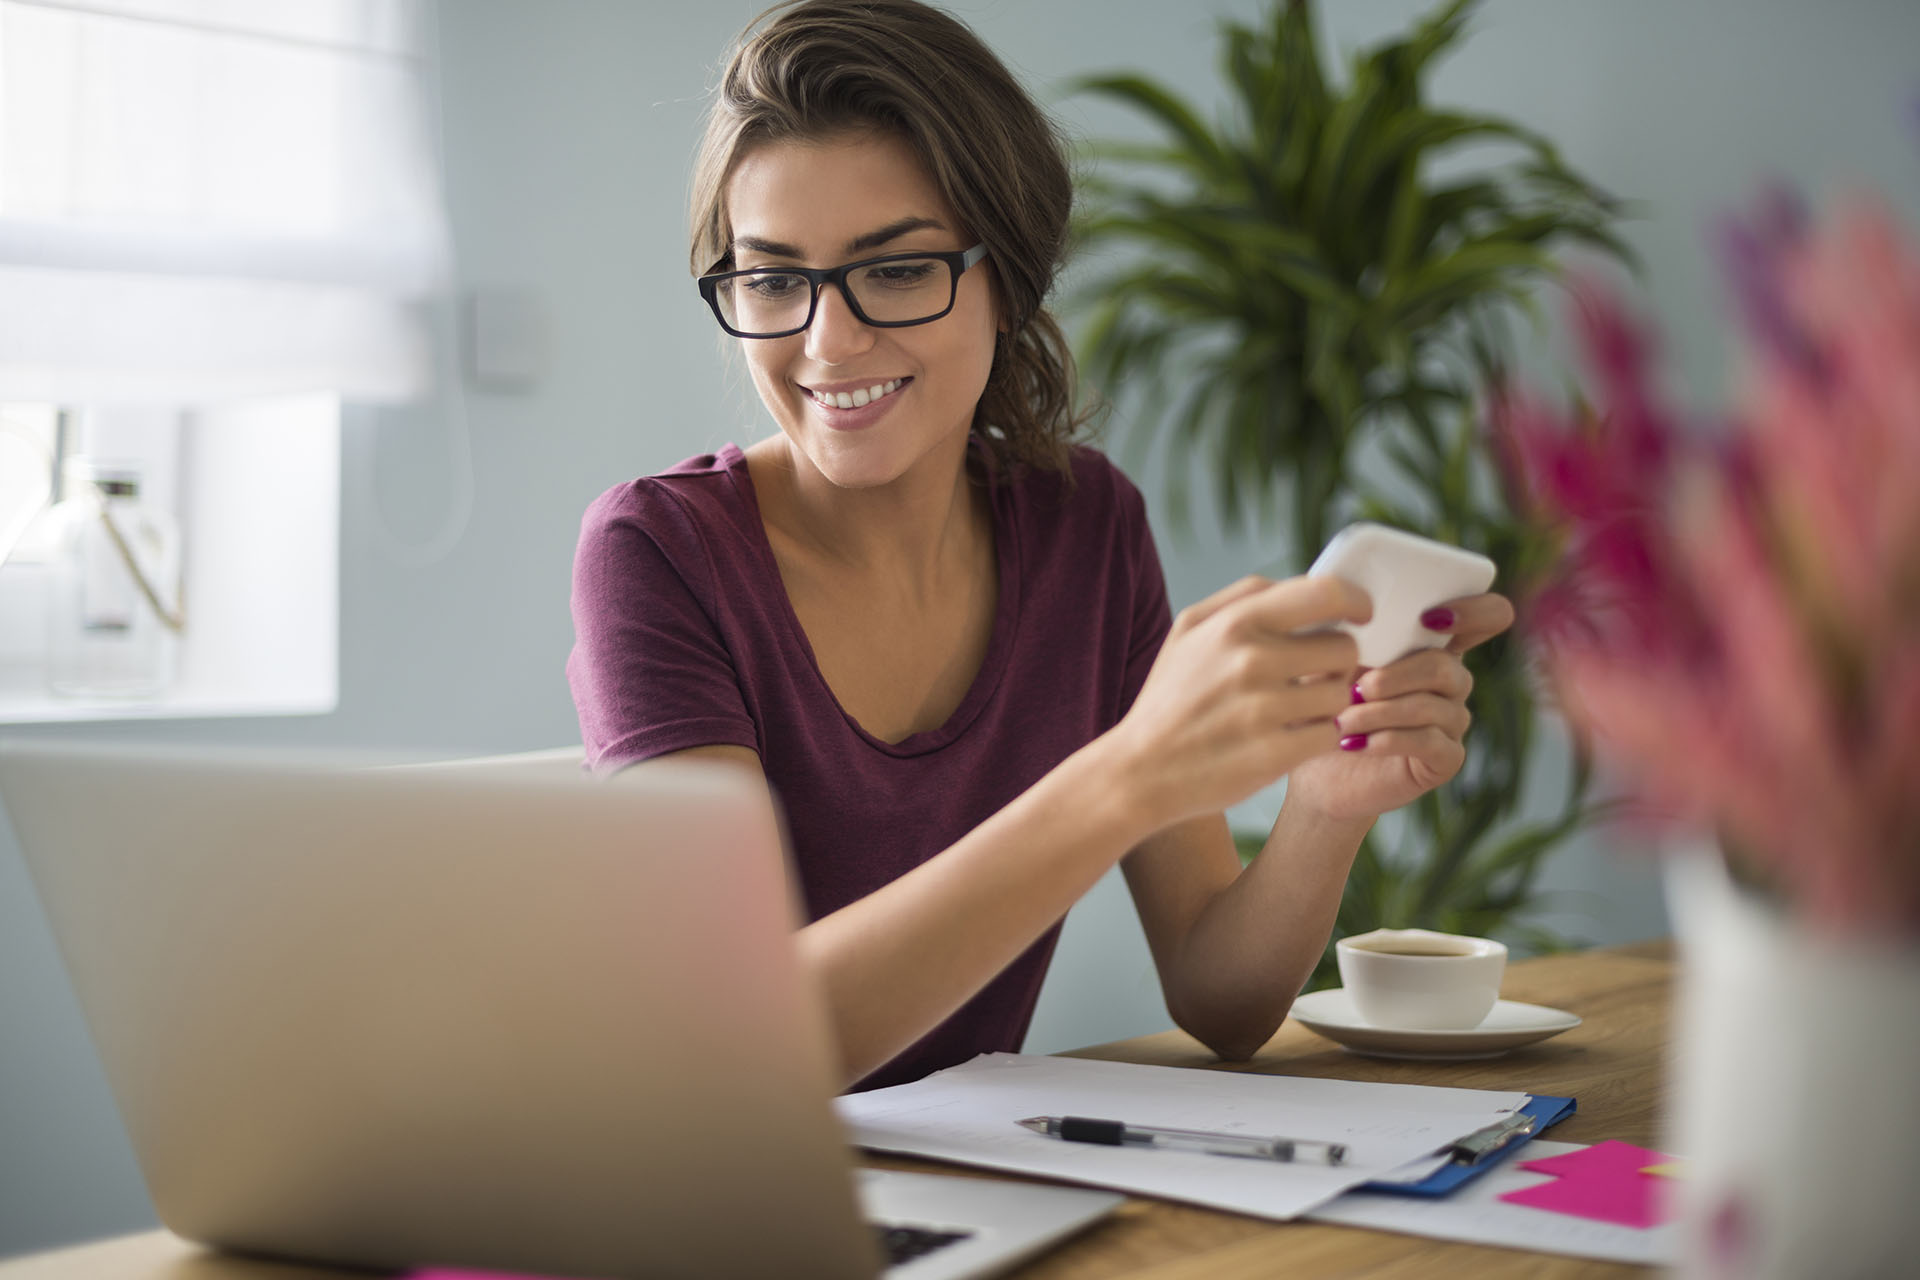 Woman holding mobile phone and looking at laptop